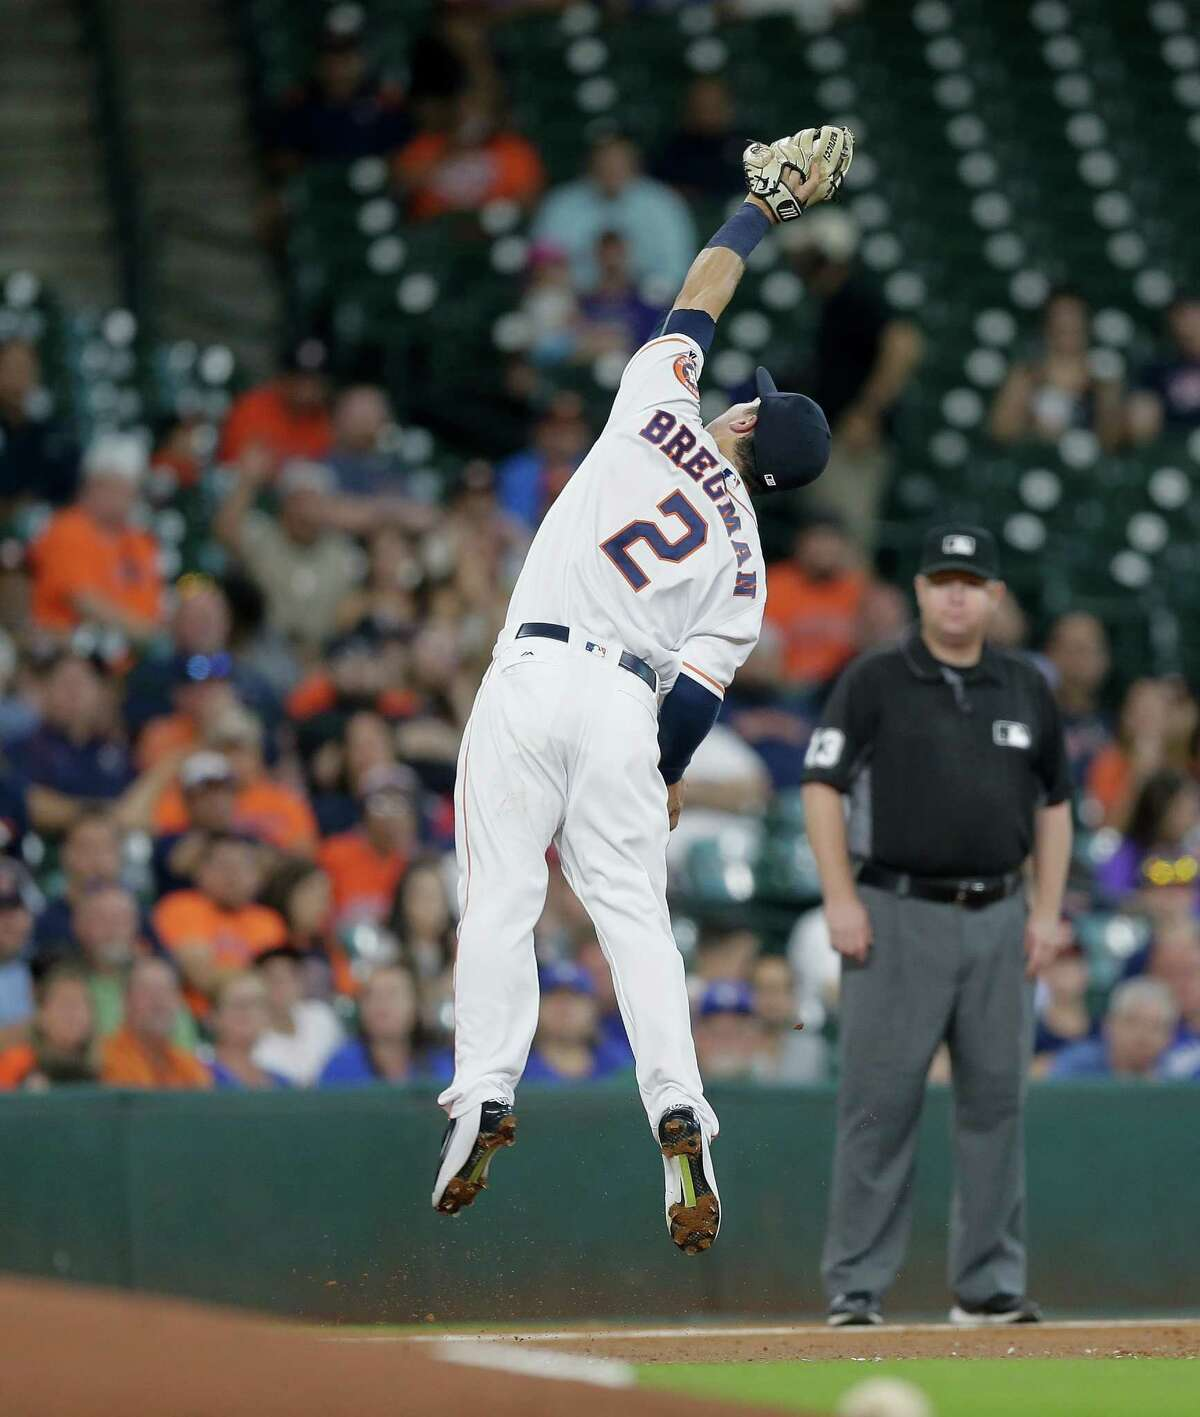 HOUSTON, TX - AUGUST 01: Alex Bregman #2 of the Houston Astros makes a catch on a high chop to retire Darwin Barney #18 of the Toronto Blue Jays in the third inning at Minute Maid Park on August 1, 2016 in Houston, Texas.